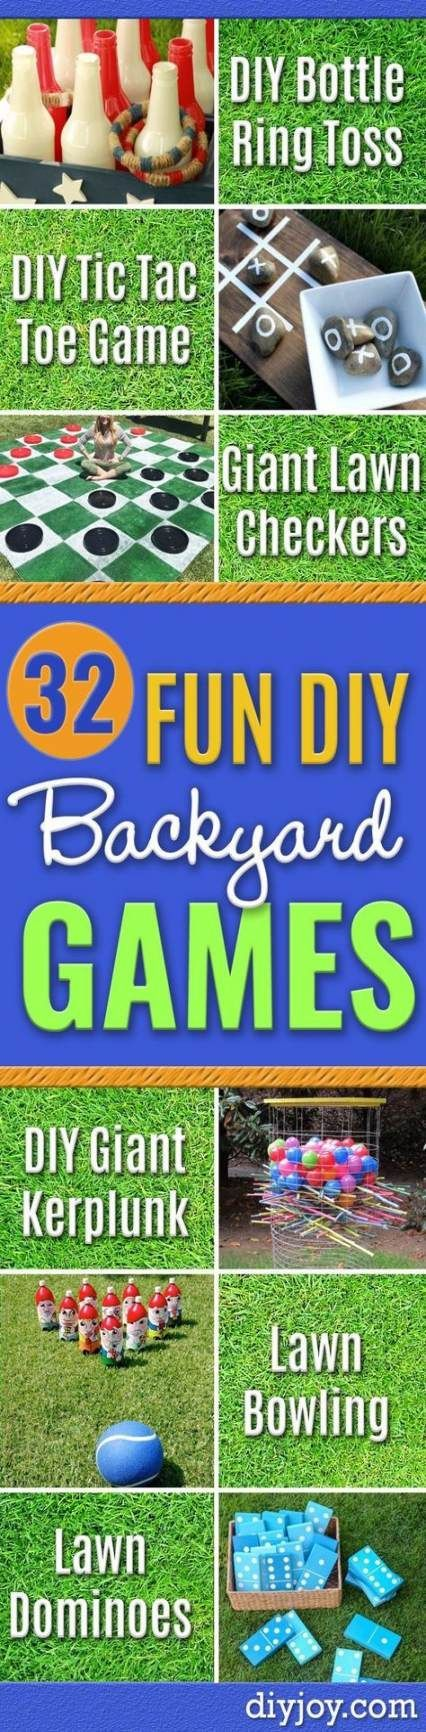 Outdoor summer games for adults yards 22 new Ideas #projekteimfreien